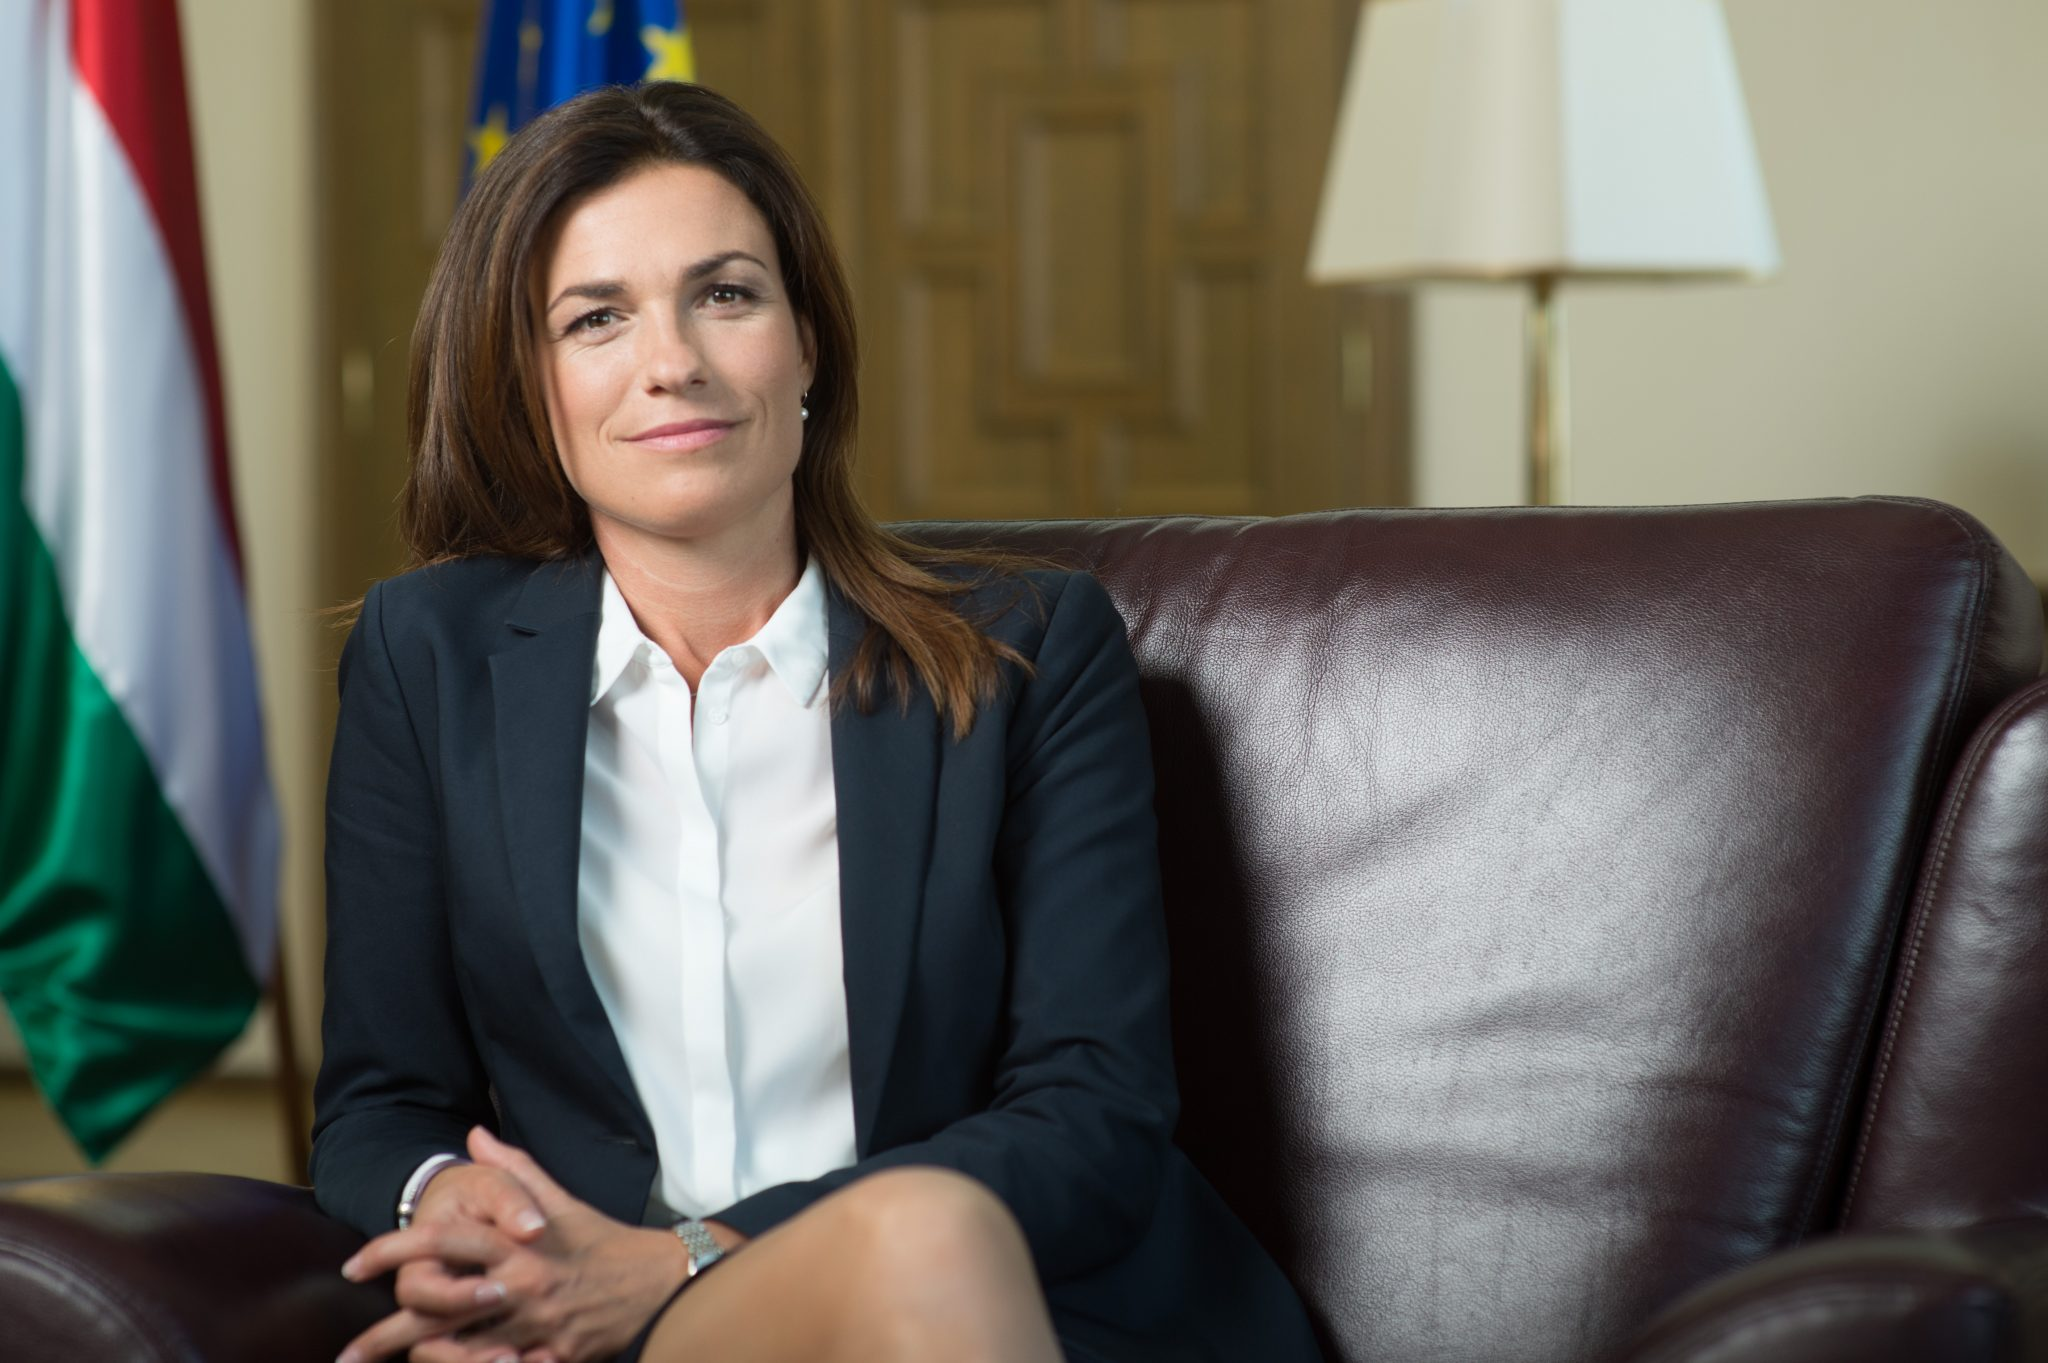 Coronavirus – Justice Minister to Concerned EU Gov'ts: Epidemic Bill in Line with EU Values post's picture